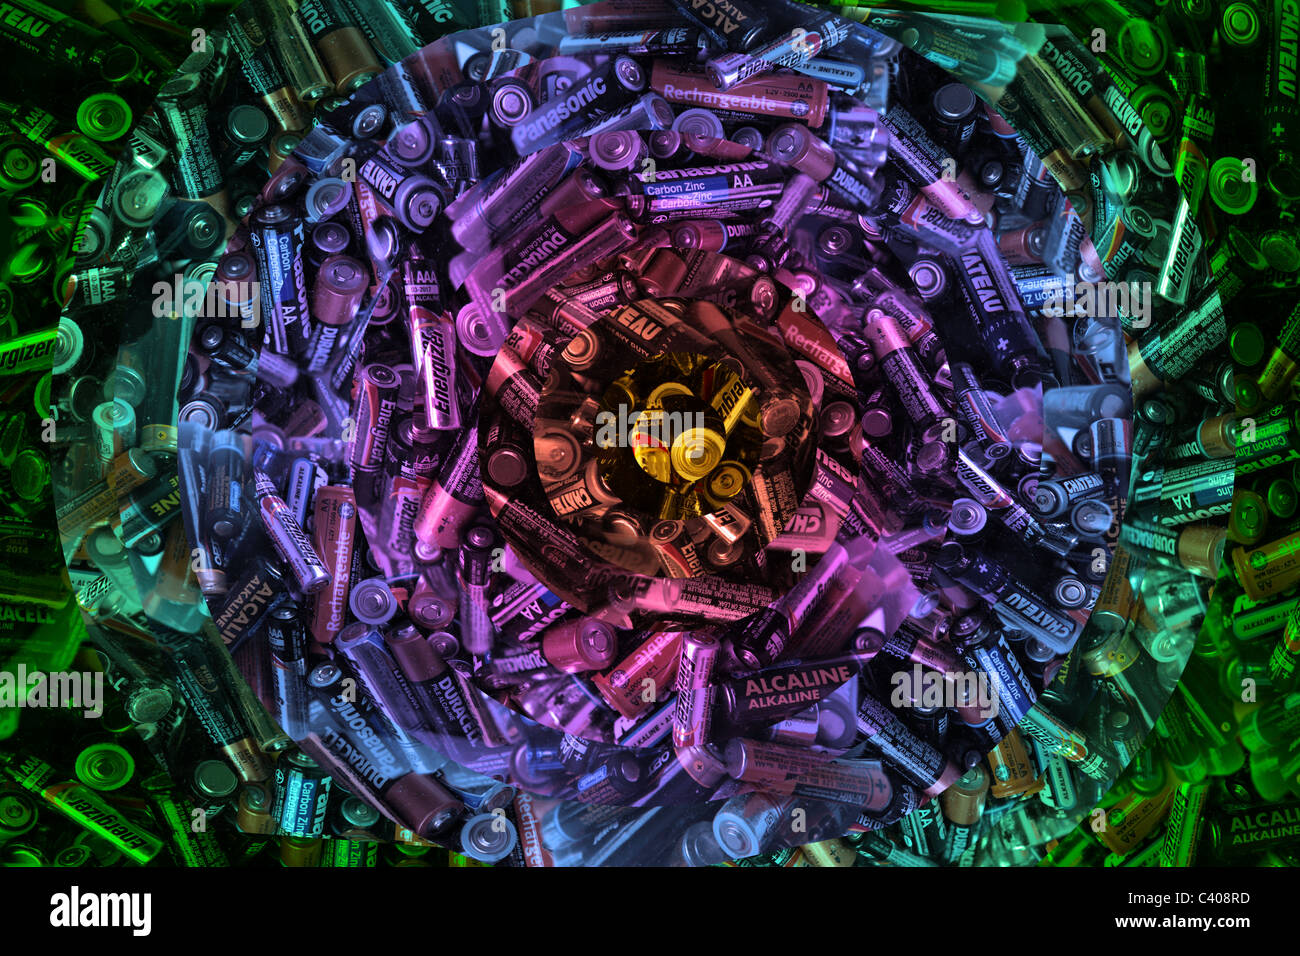 Dynamic vision of a large number of AA batteries, ready to be recycled - Stock Image